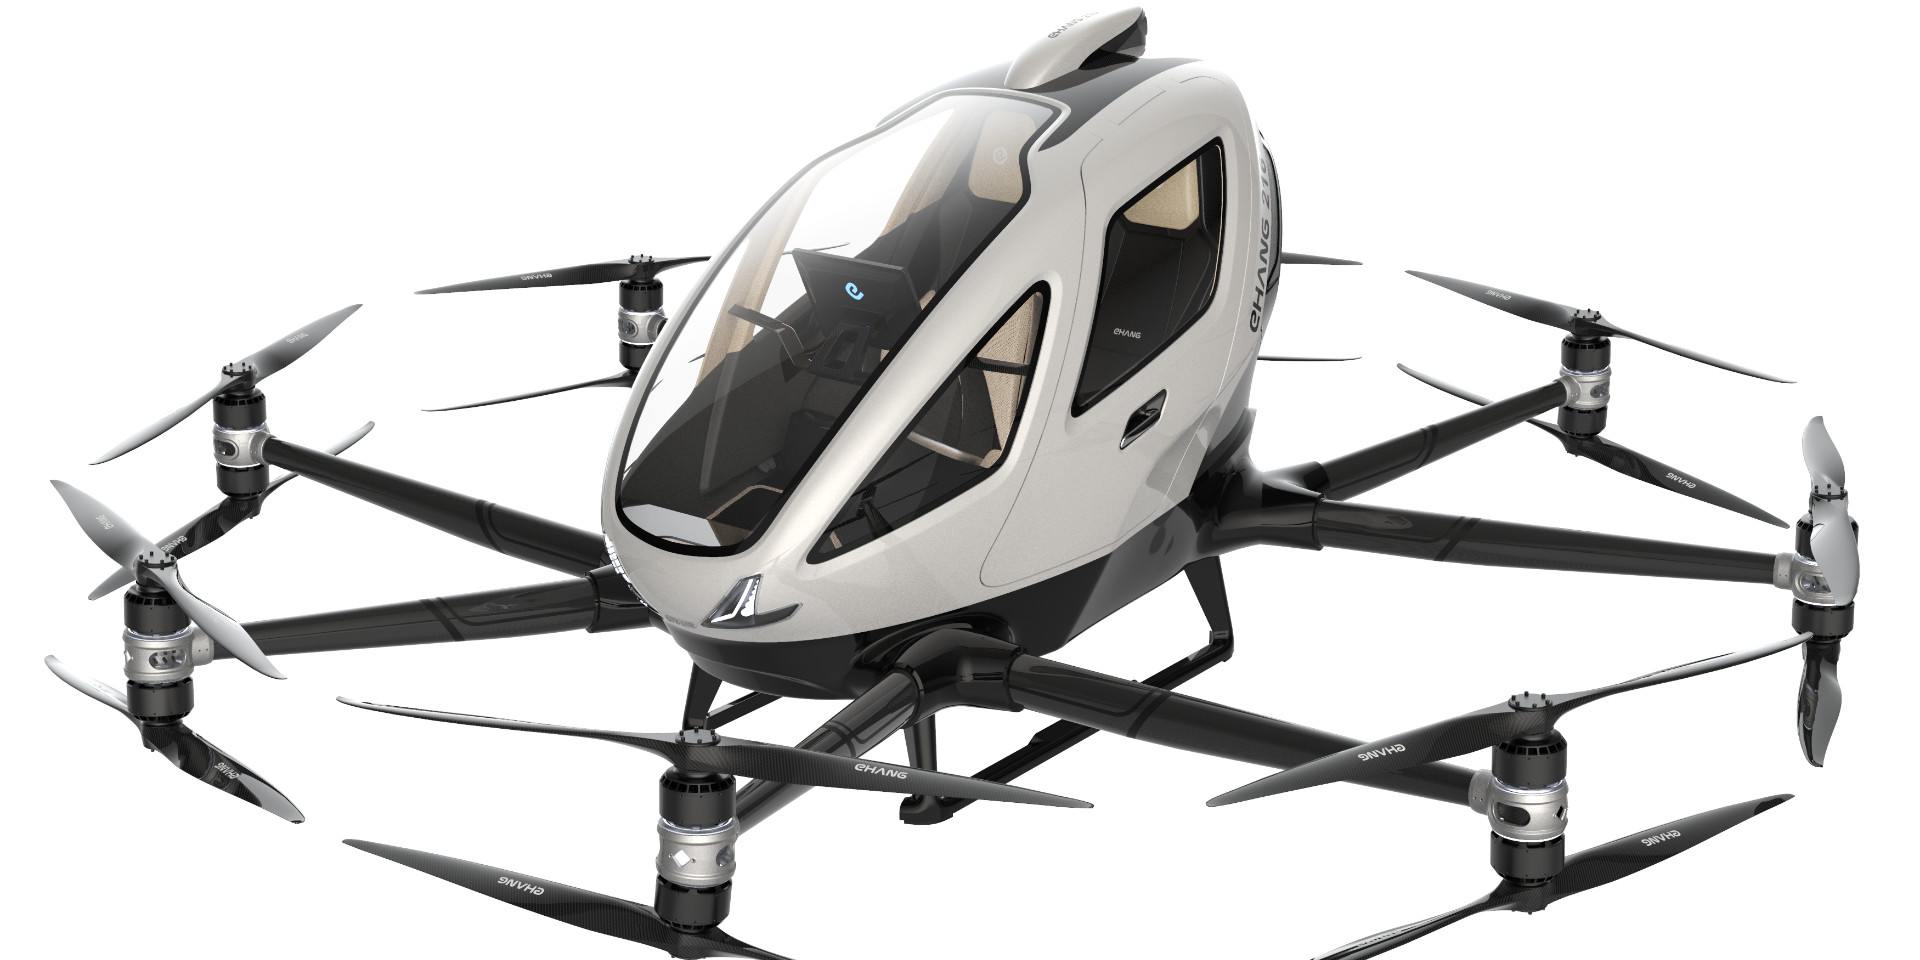 eHang electric aircraft gets approval in Norway and Spain